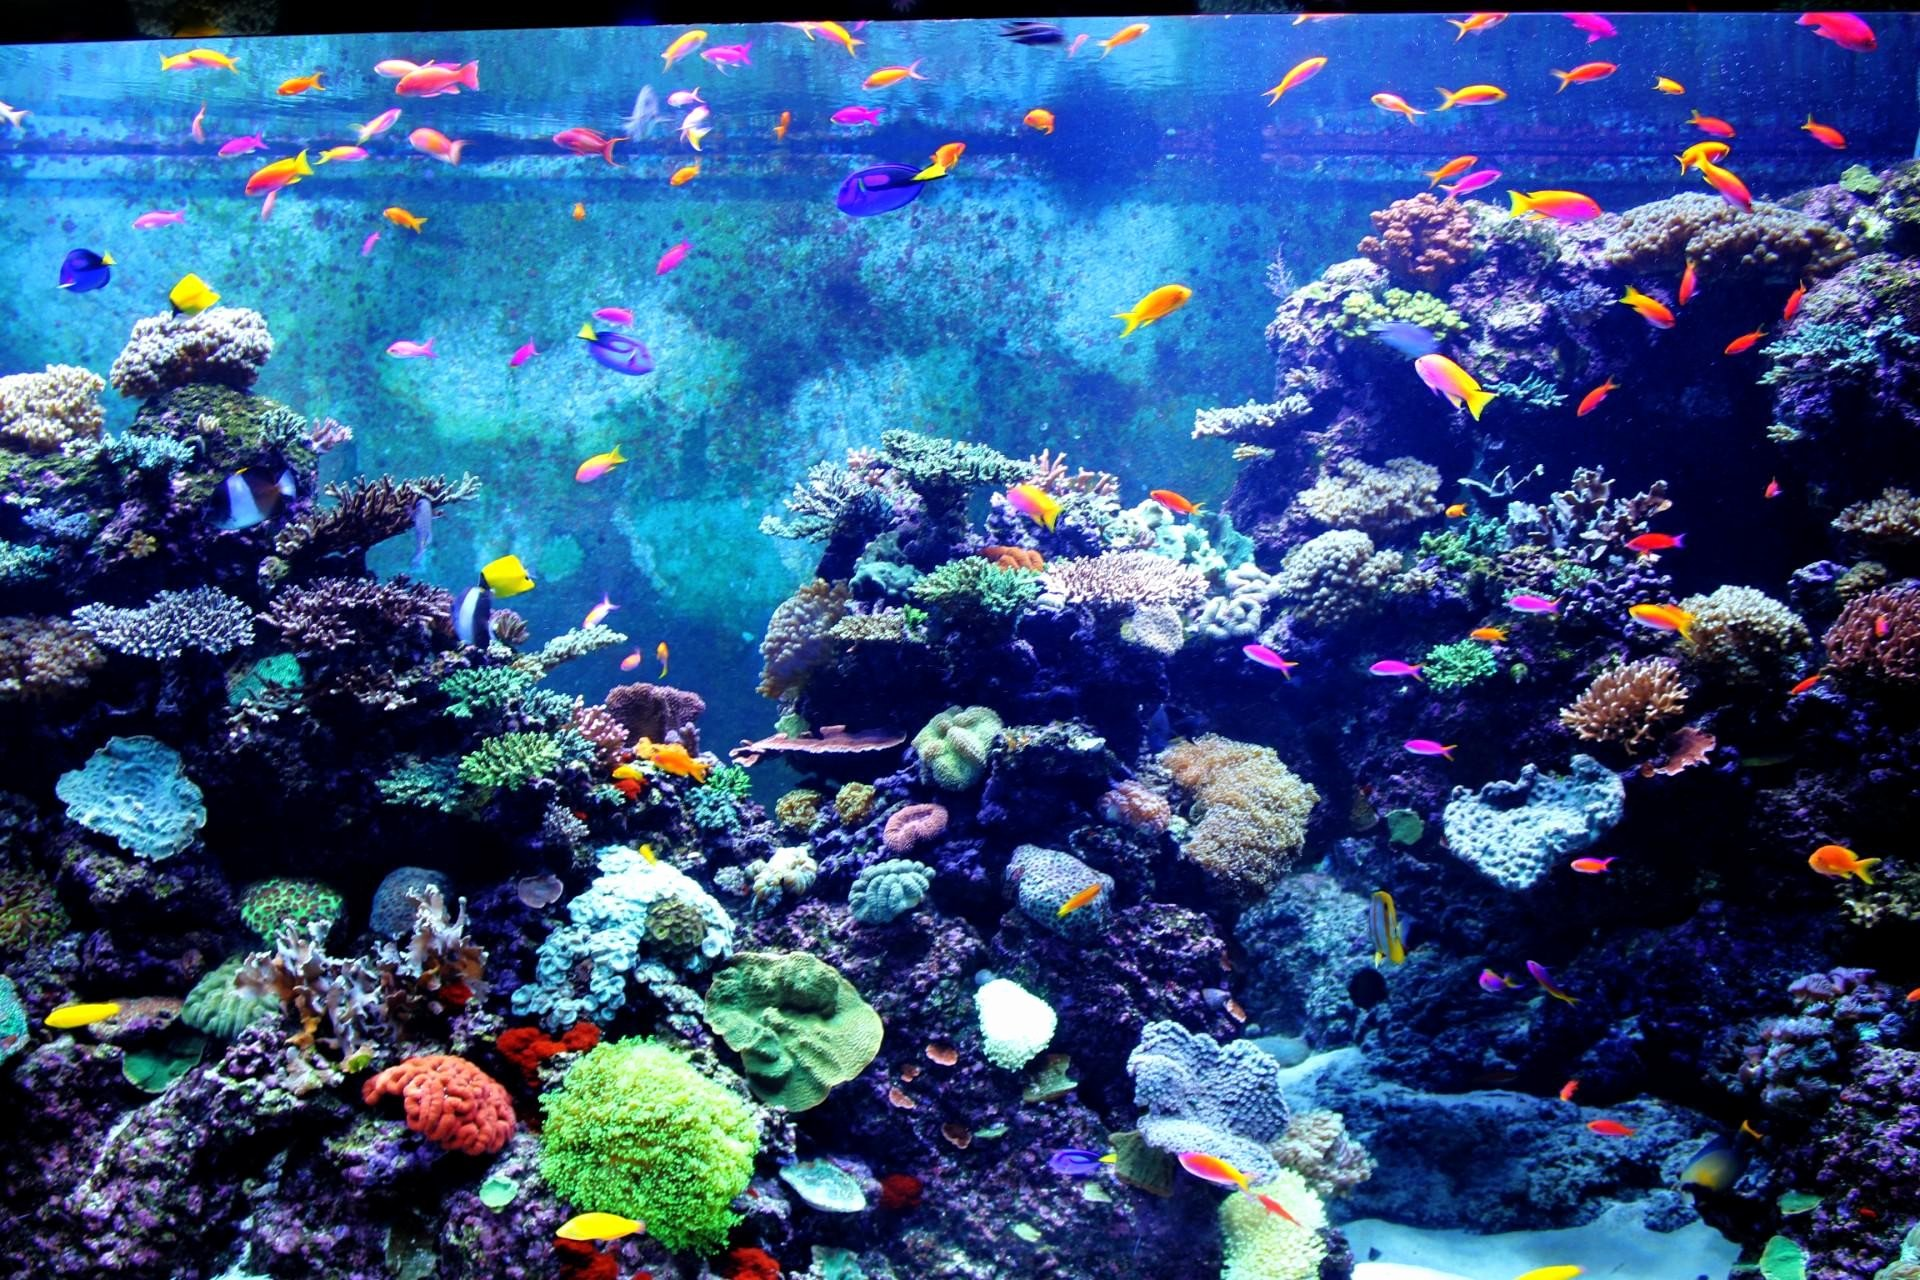 3d Fish Tank Wallpaper Luxury 3d Fish Tank Wallpaper 59 Images